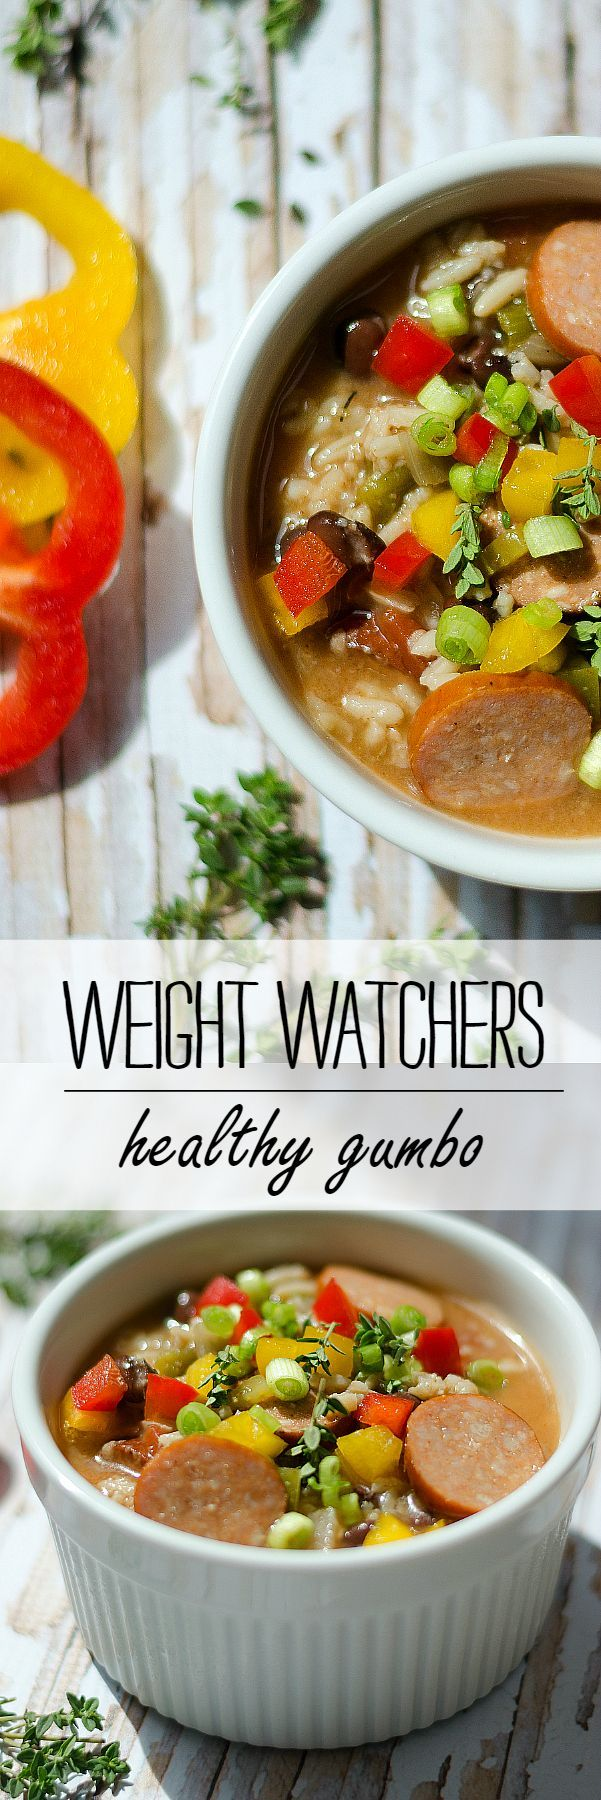 Weight Watchers Recipe Ideas for Dinner: Healthy Gumbo - 5 Points